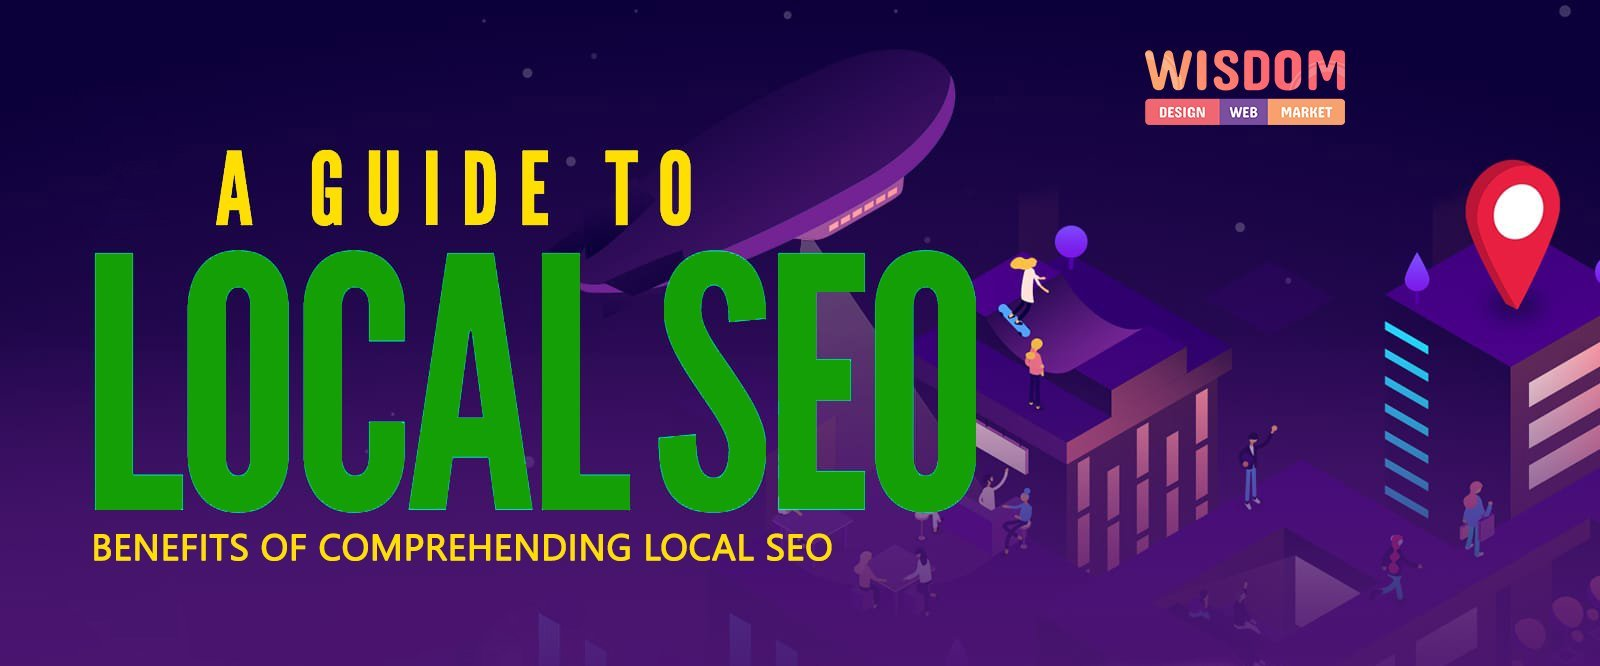 Benefits of Comprehending Local SEO